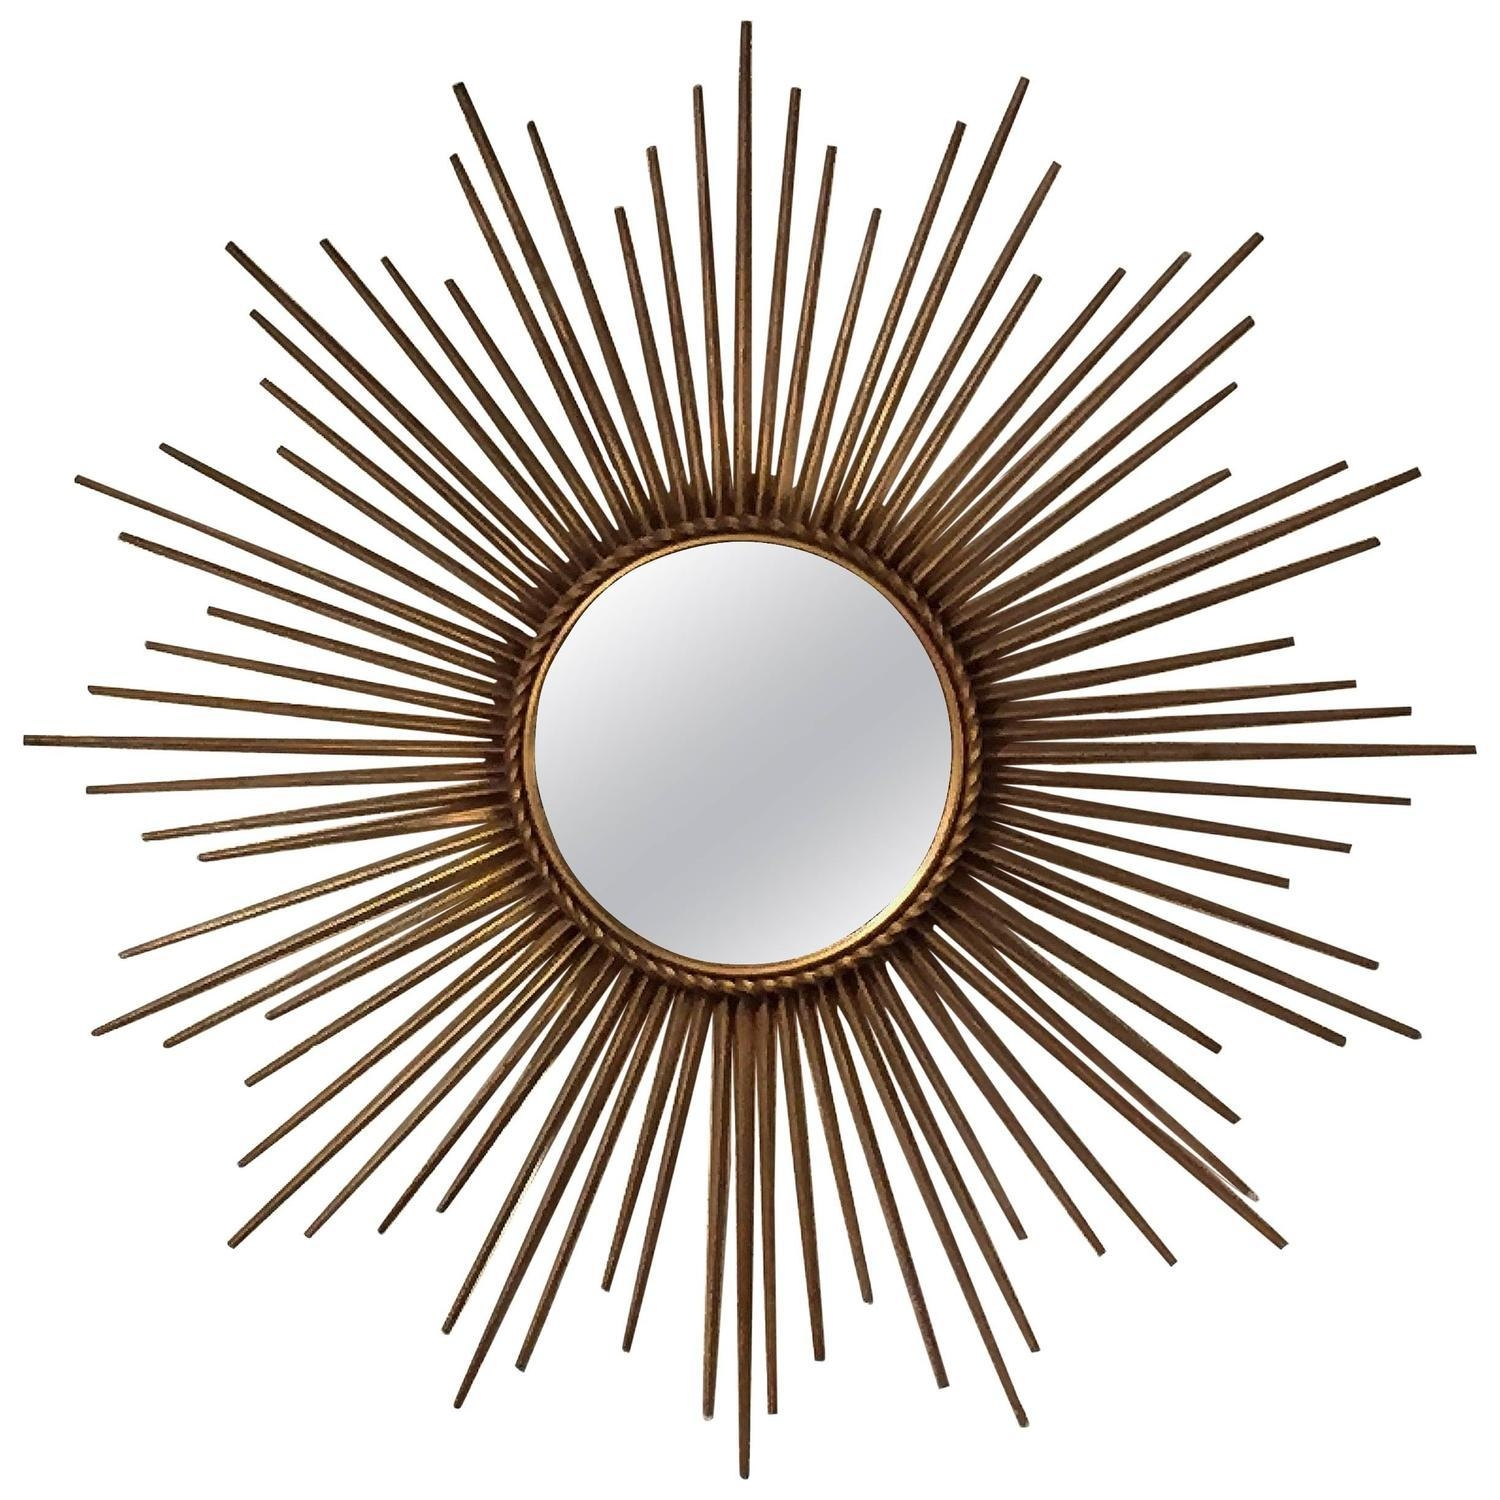 French Gilt Sunburst Or Starburst Mirrorchaty Vallauris At 1Stdibs Within Starburst Convex Mirror (Image 6 of 20)